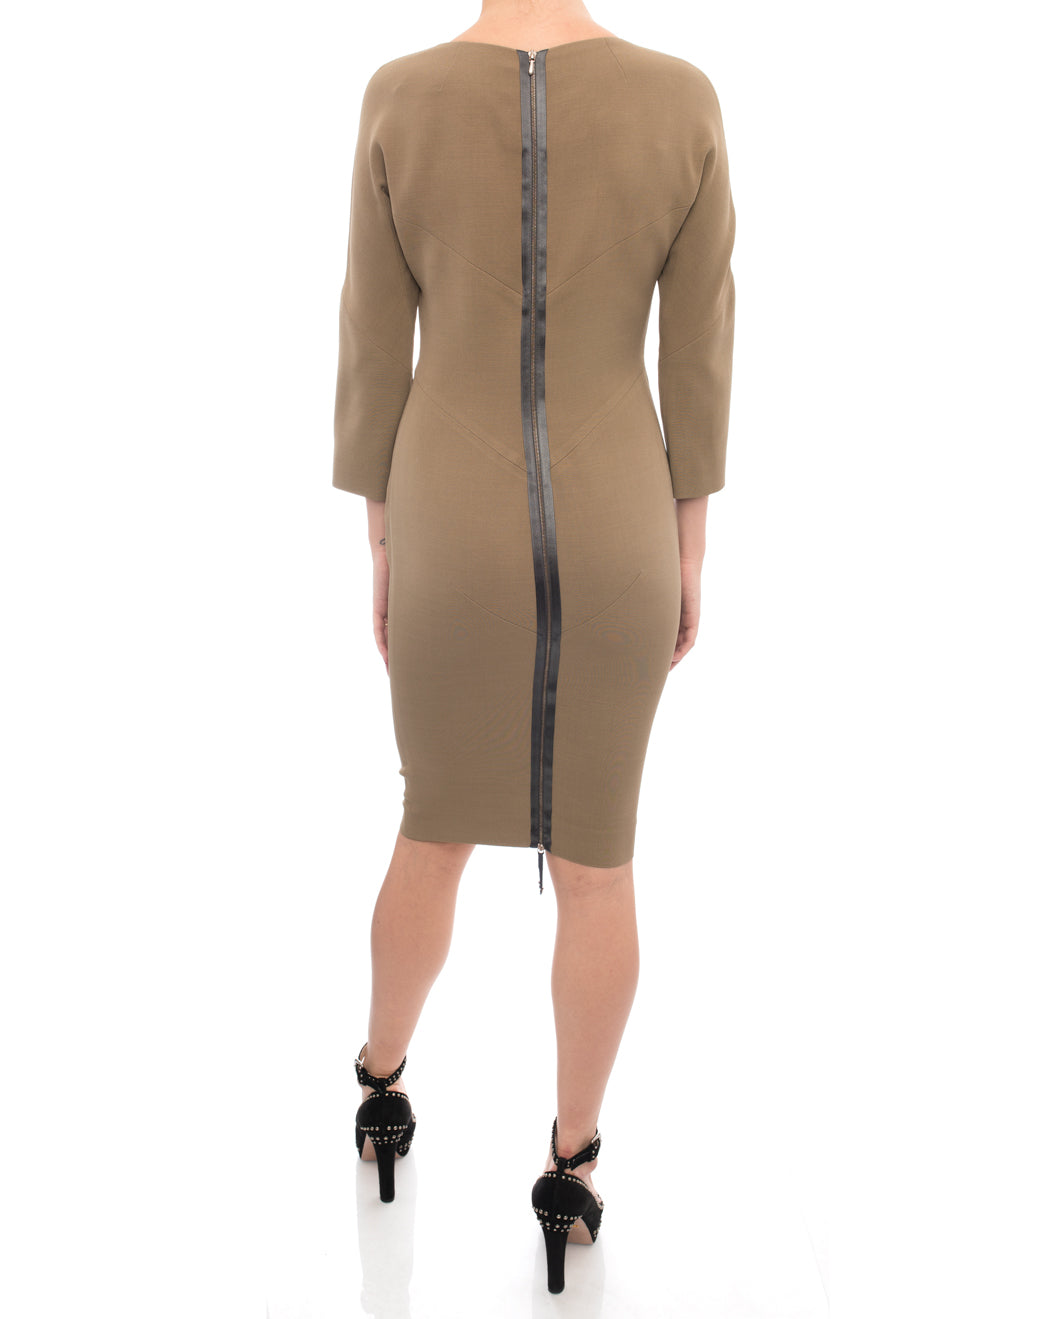 Victoria Beckham Light Brown Seamed Wiggle Dress - 4